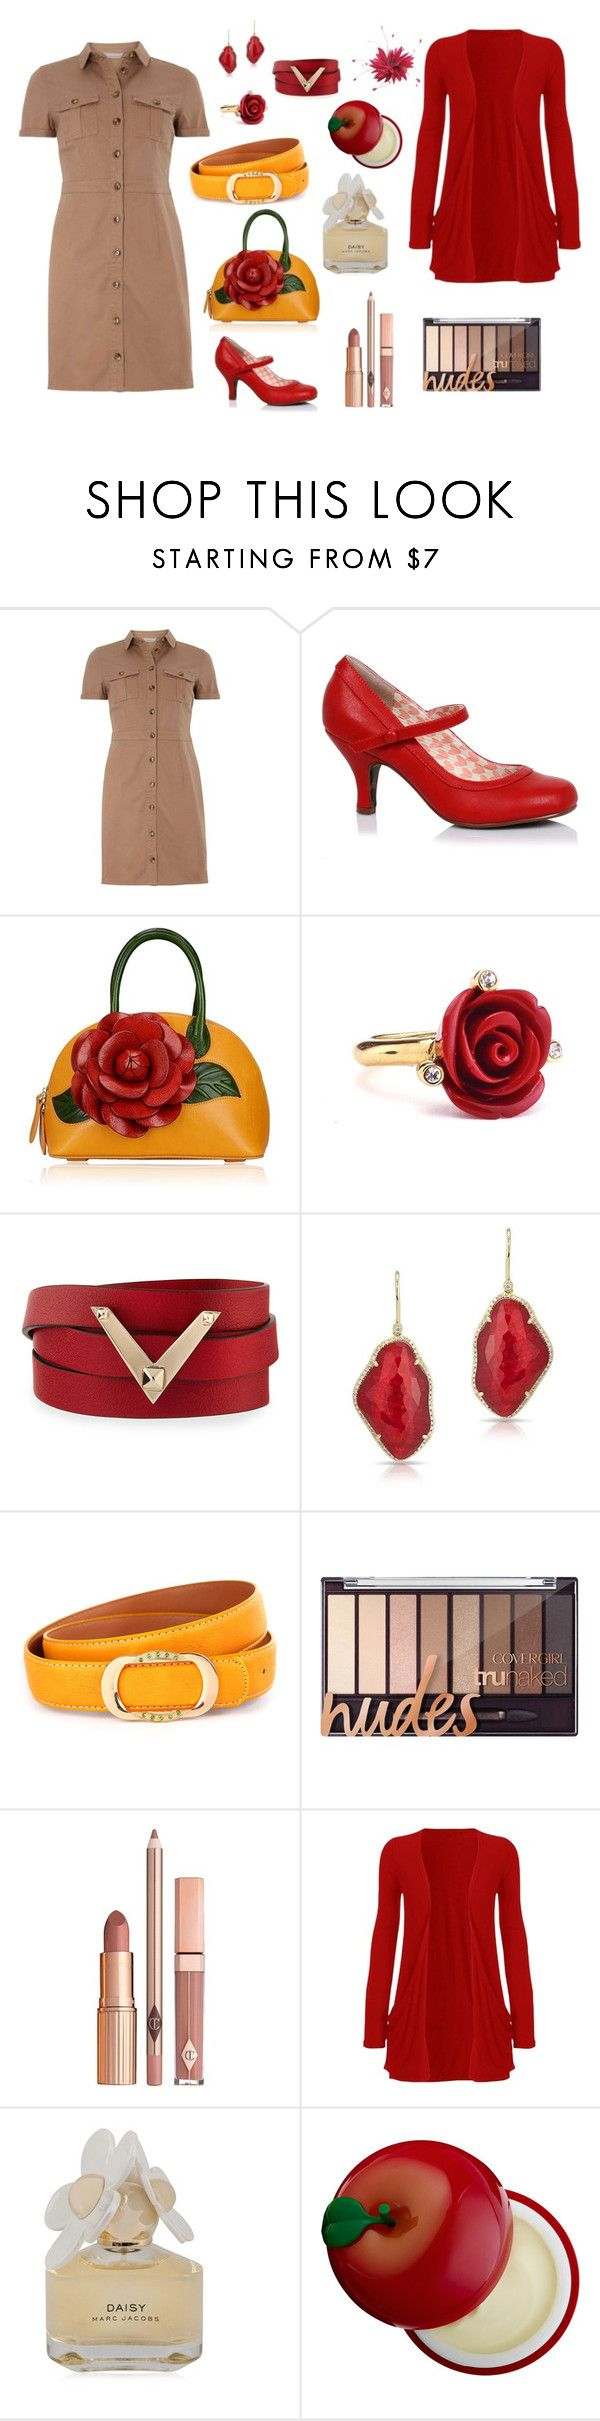 """R&B"" by adryela ❤ liked on Polyvore featuring mel, Oscar de la Renta, Valentino, Anne Sisteron, Dolce Vita, Marc by Marc Jacobs, Tony Moly and Jane Tran"